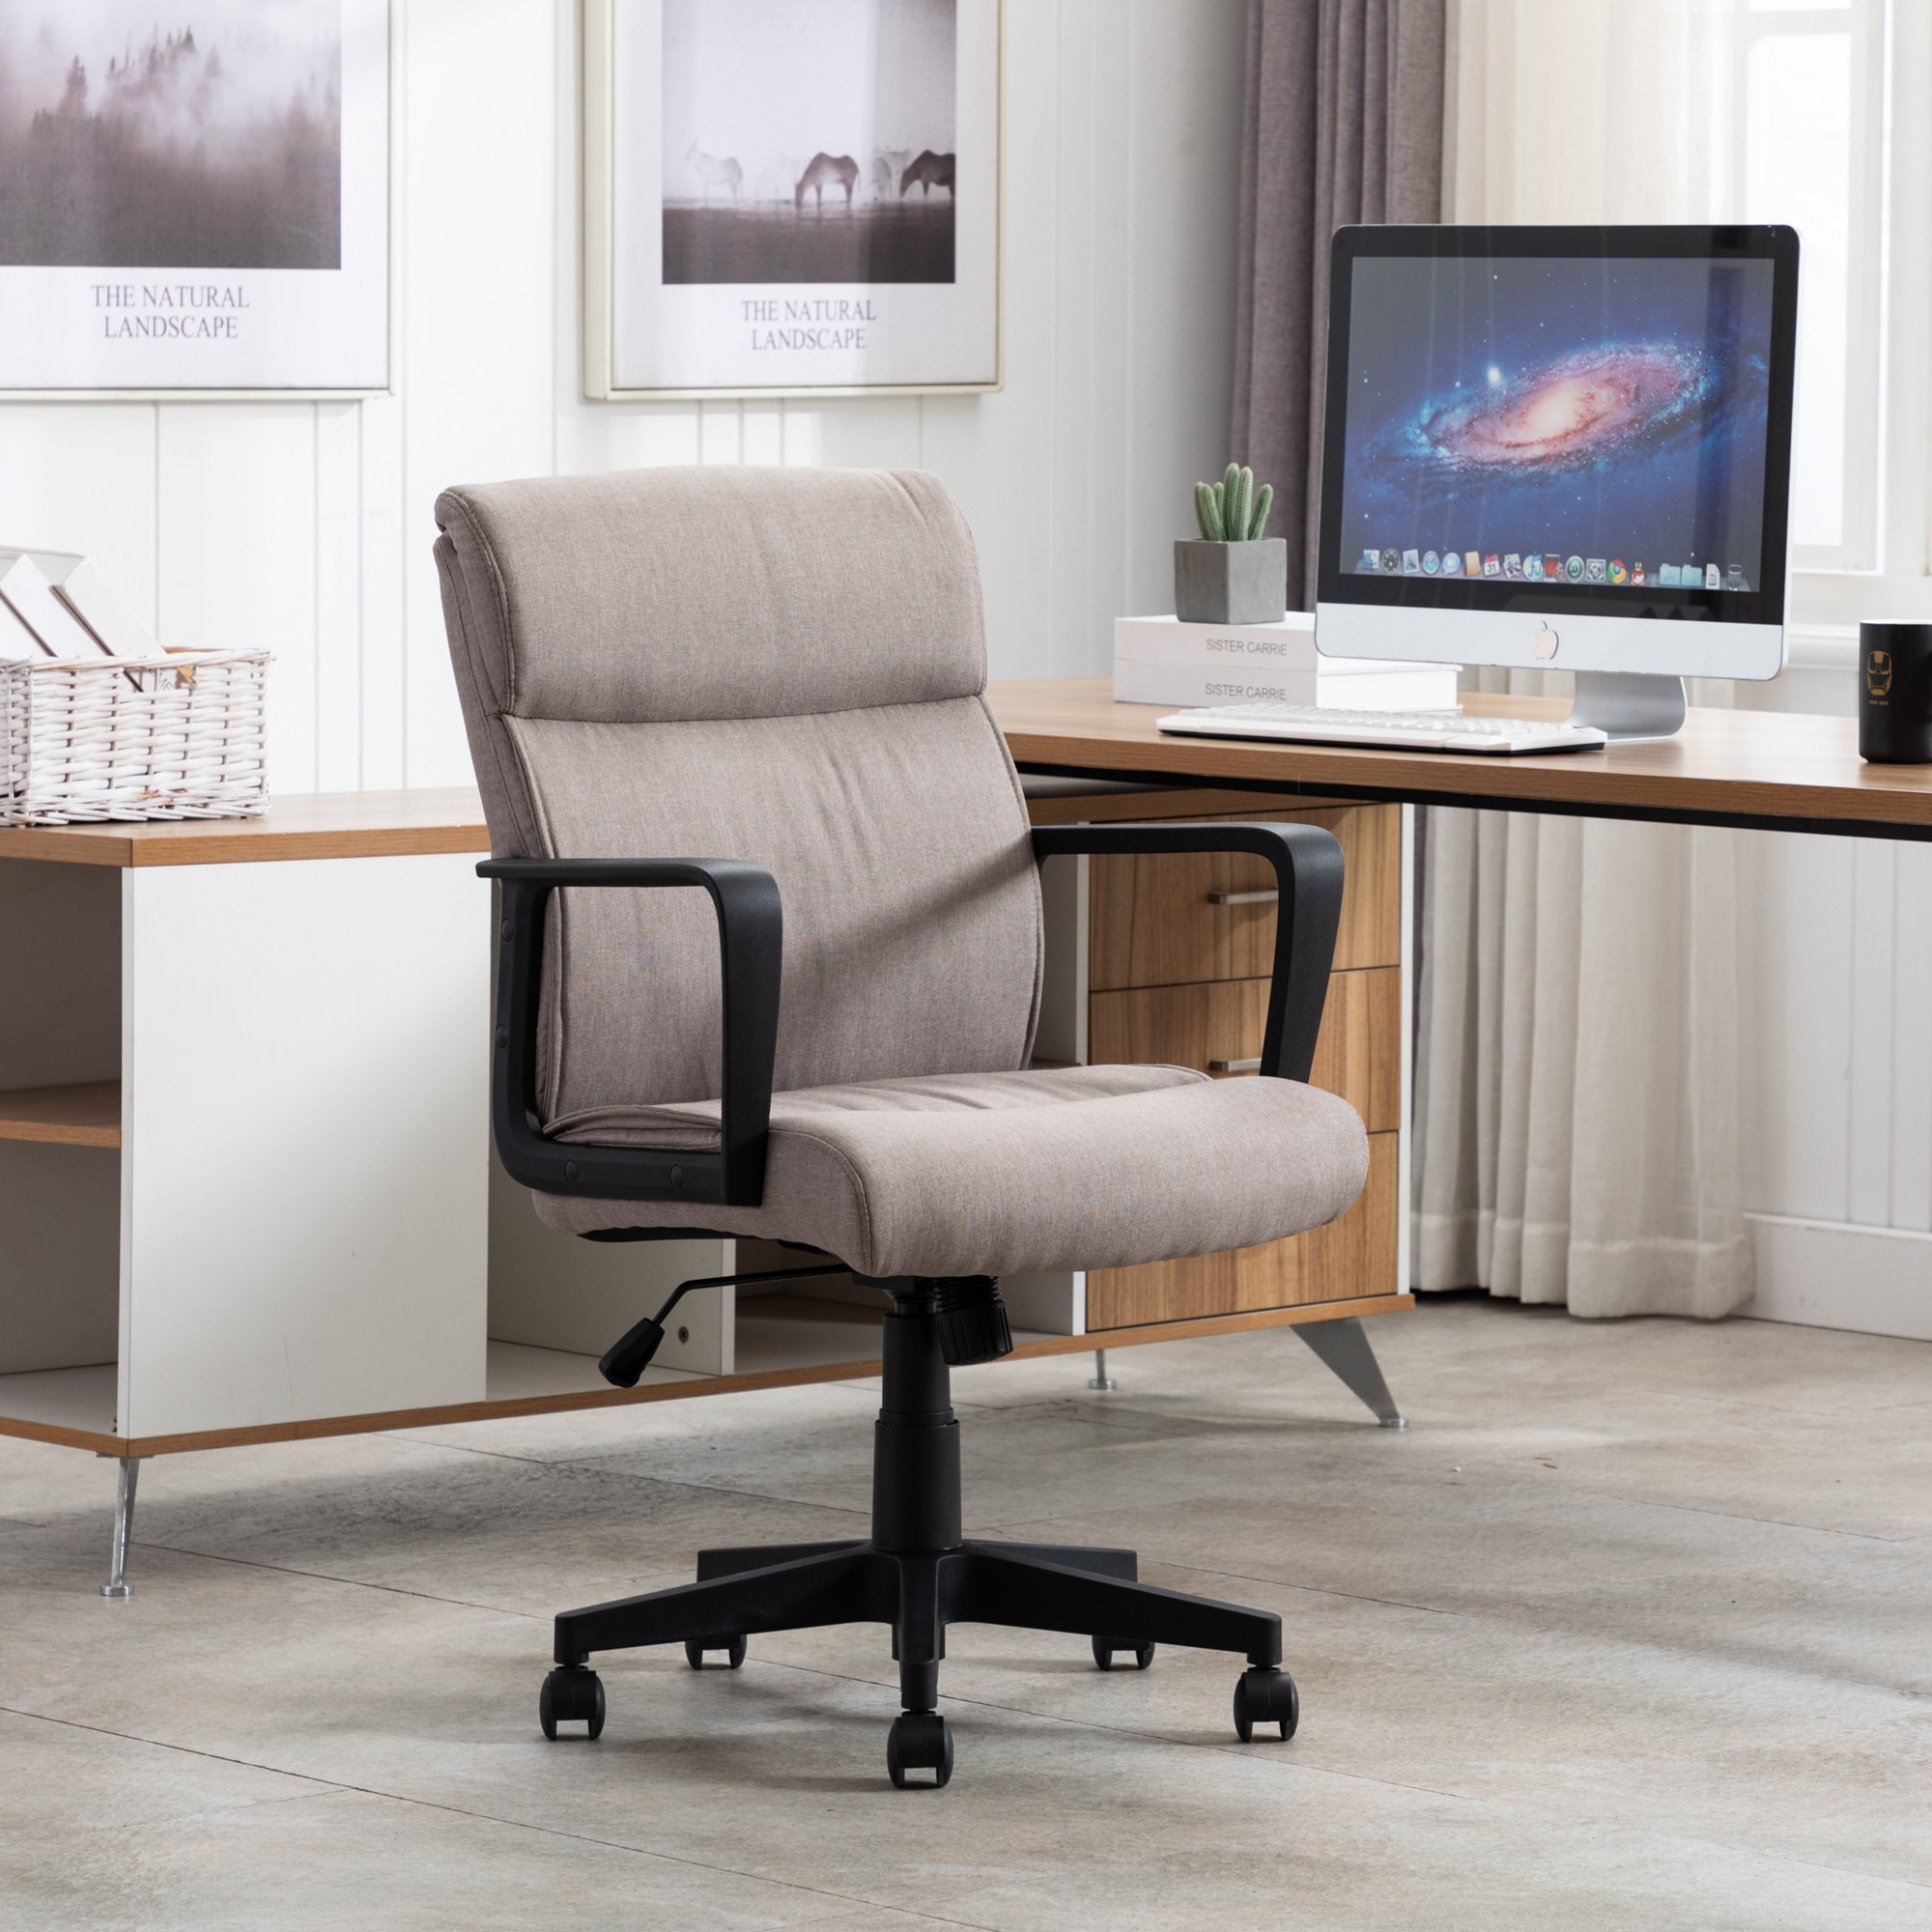 homall ribbed office chair mid back pu leather executive conference desk chair adjustable swivel chair with comfortable arms Nordic Style Office Chair Spring Cushion Mid Back Executive Desk Swivel Task Chair With Wheels Office Furnitures